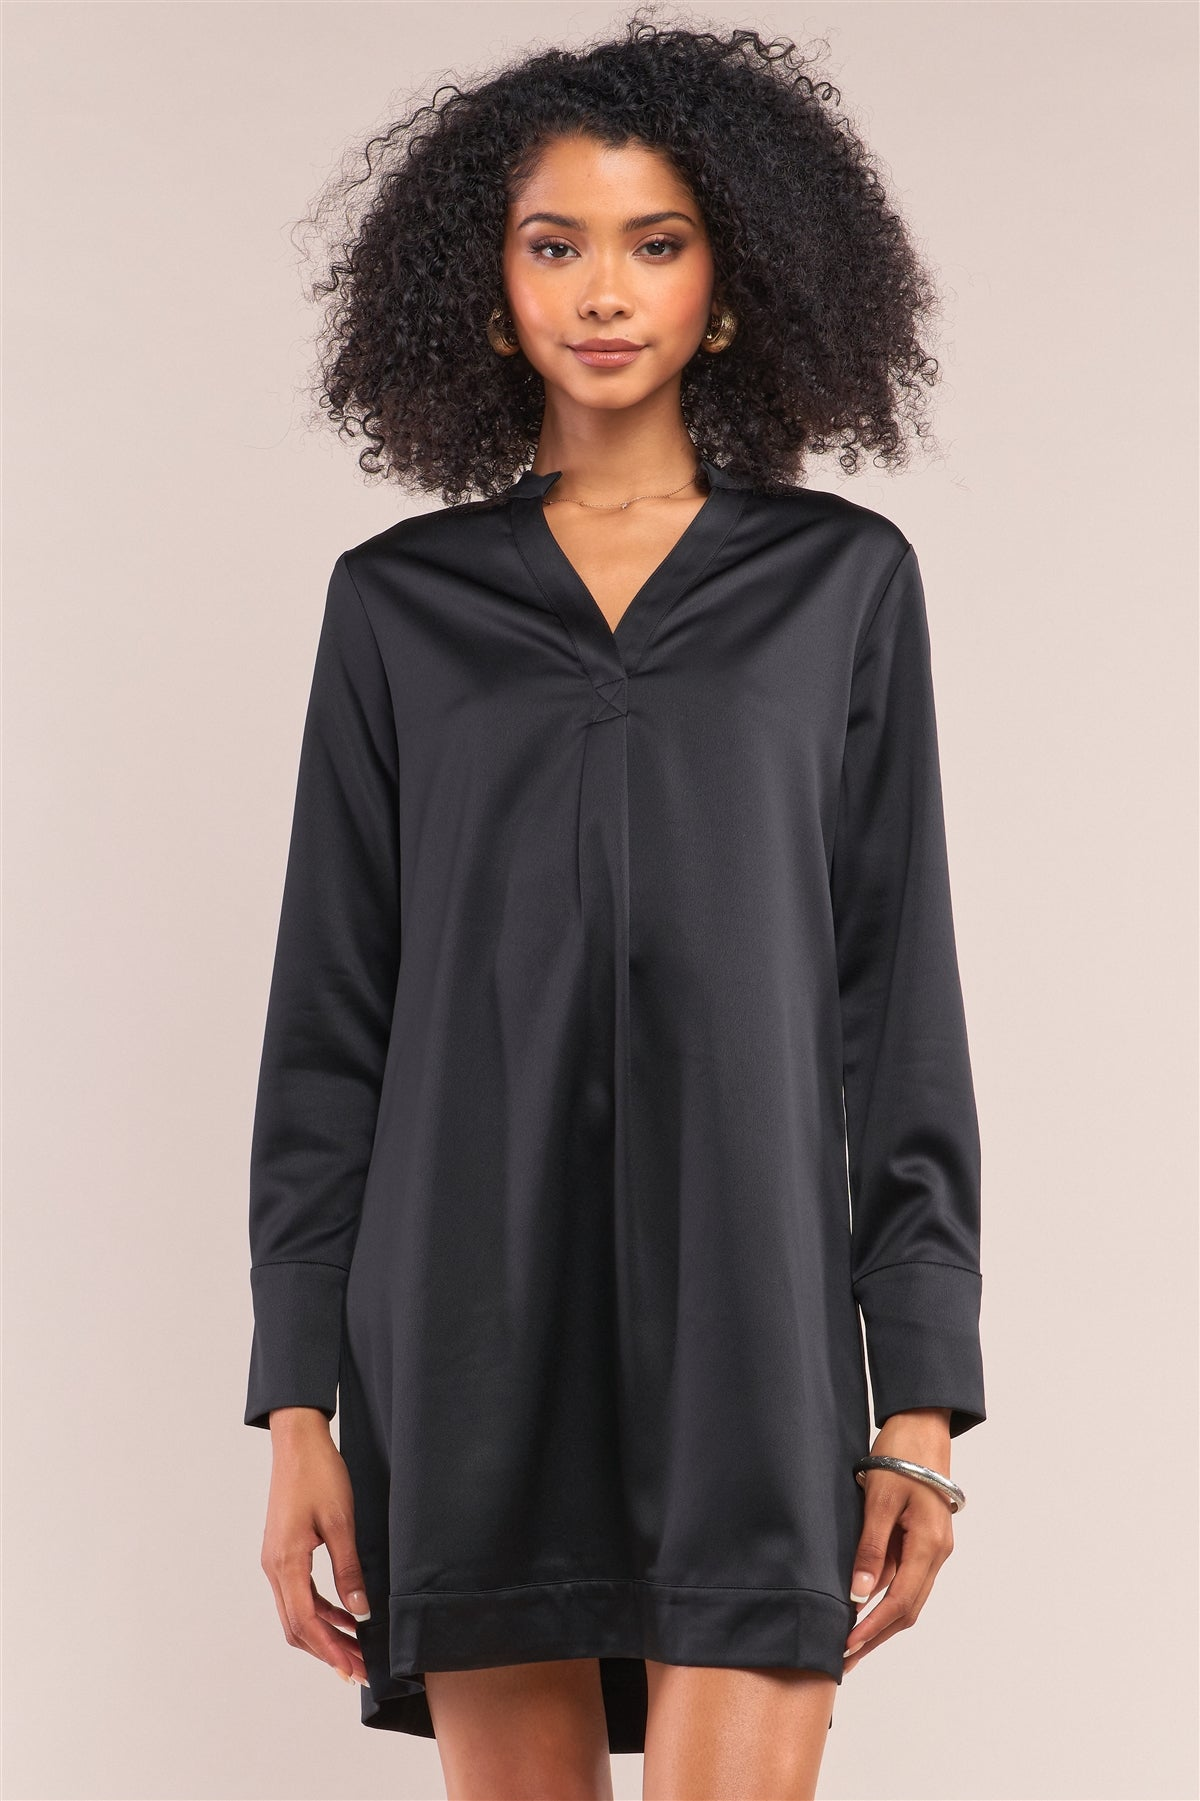 Jet Black Satin V-neck Long Sleeve Relaxed Fit Shirt Dress